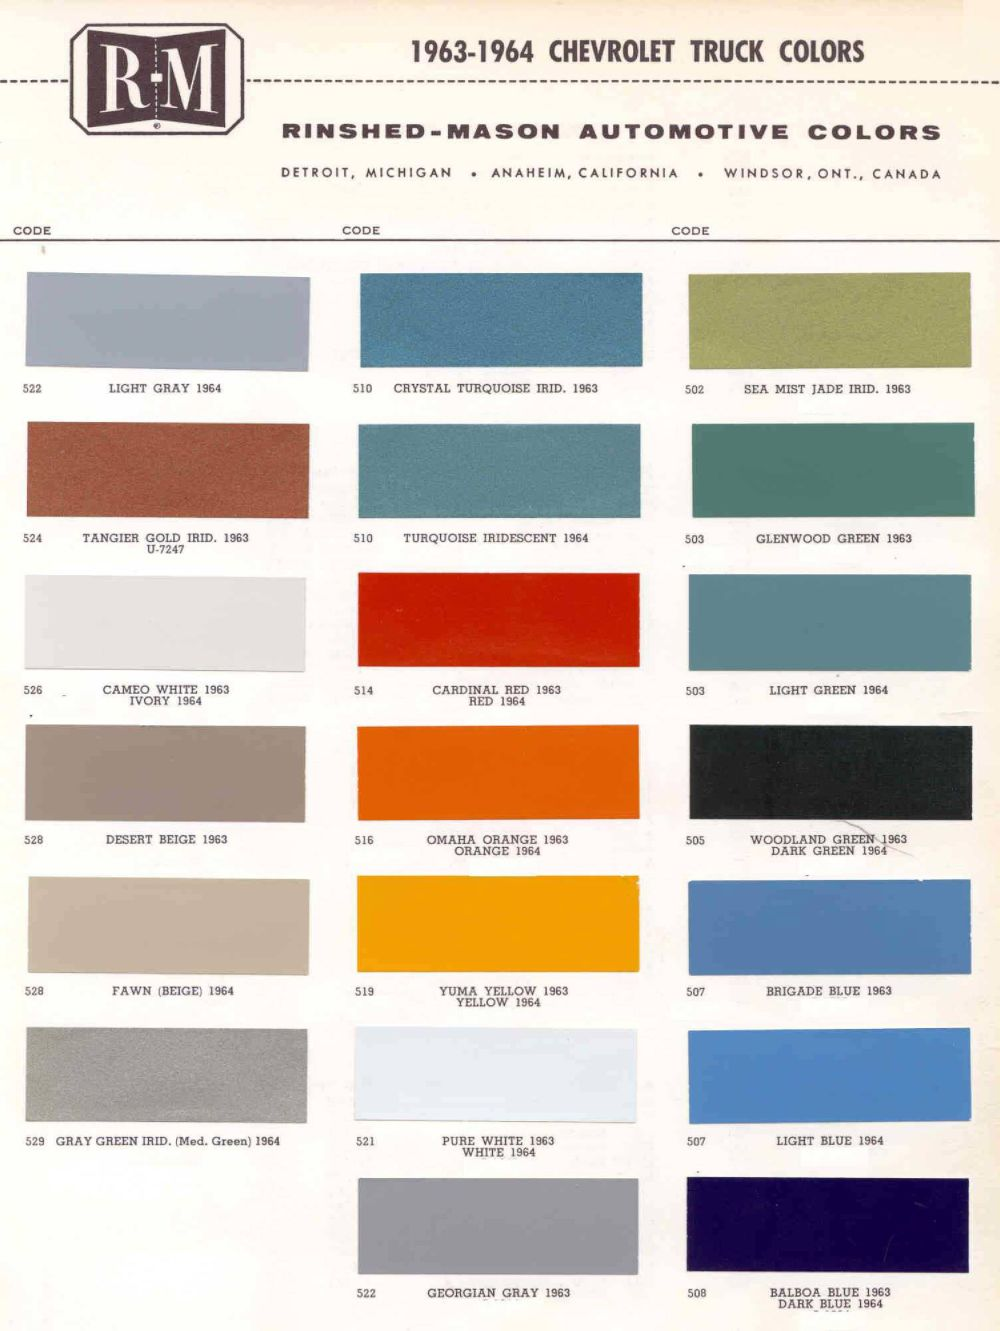 Vintage Oldsmobile Colors Paint 1964 Chevy Truck 1963 Chevrolet Trucks Click To Enlarge